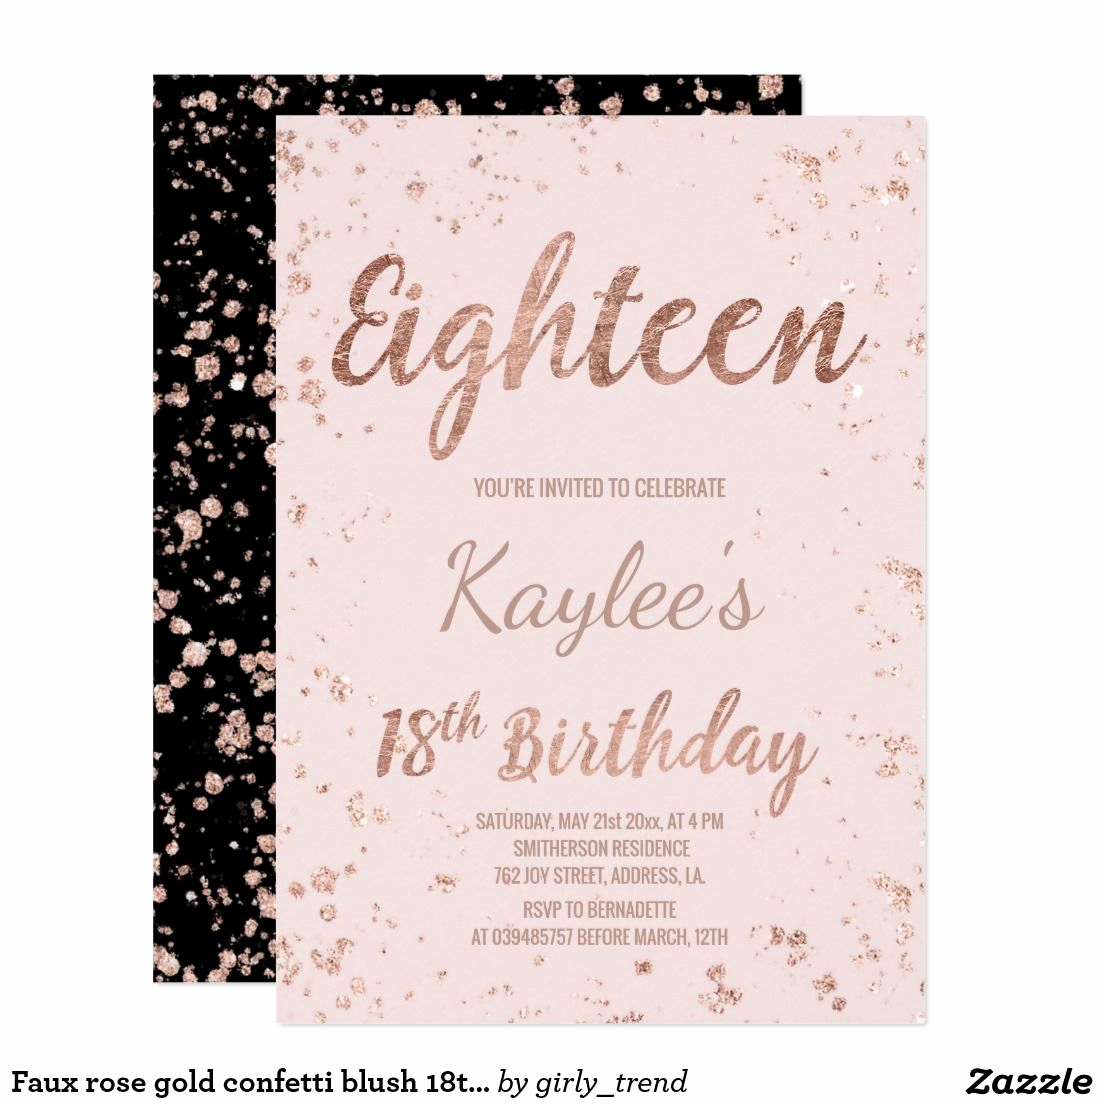 18th Birthday Invitation Wording New Faux Rose Gold Confetti Blush 18th Birthday Invitation